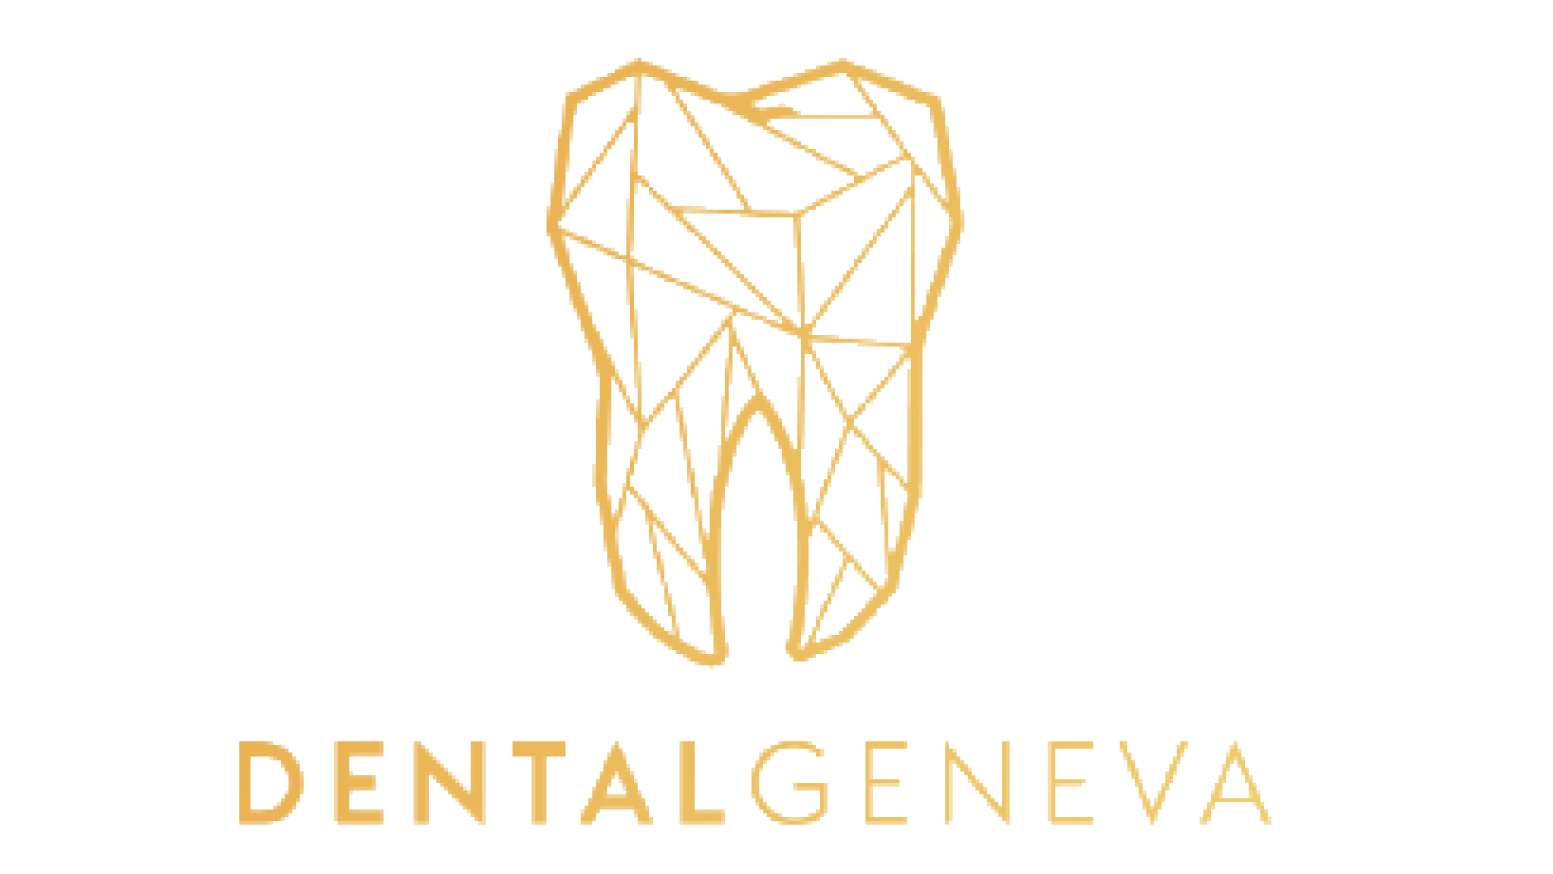 Dental Geneva